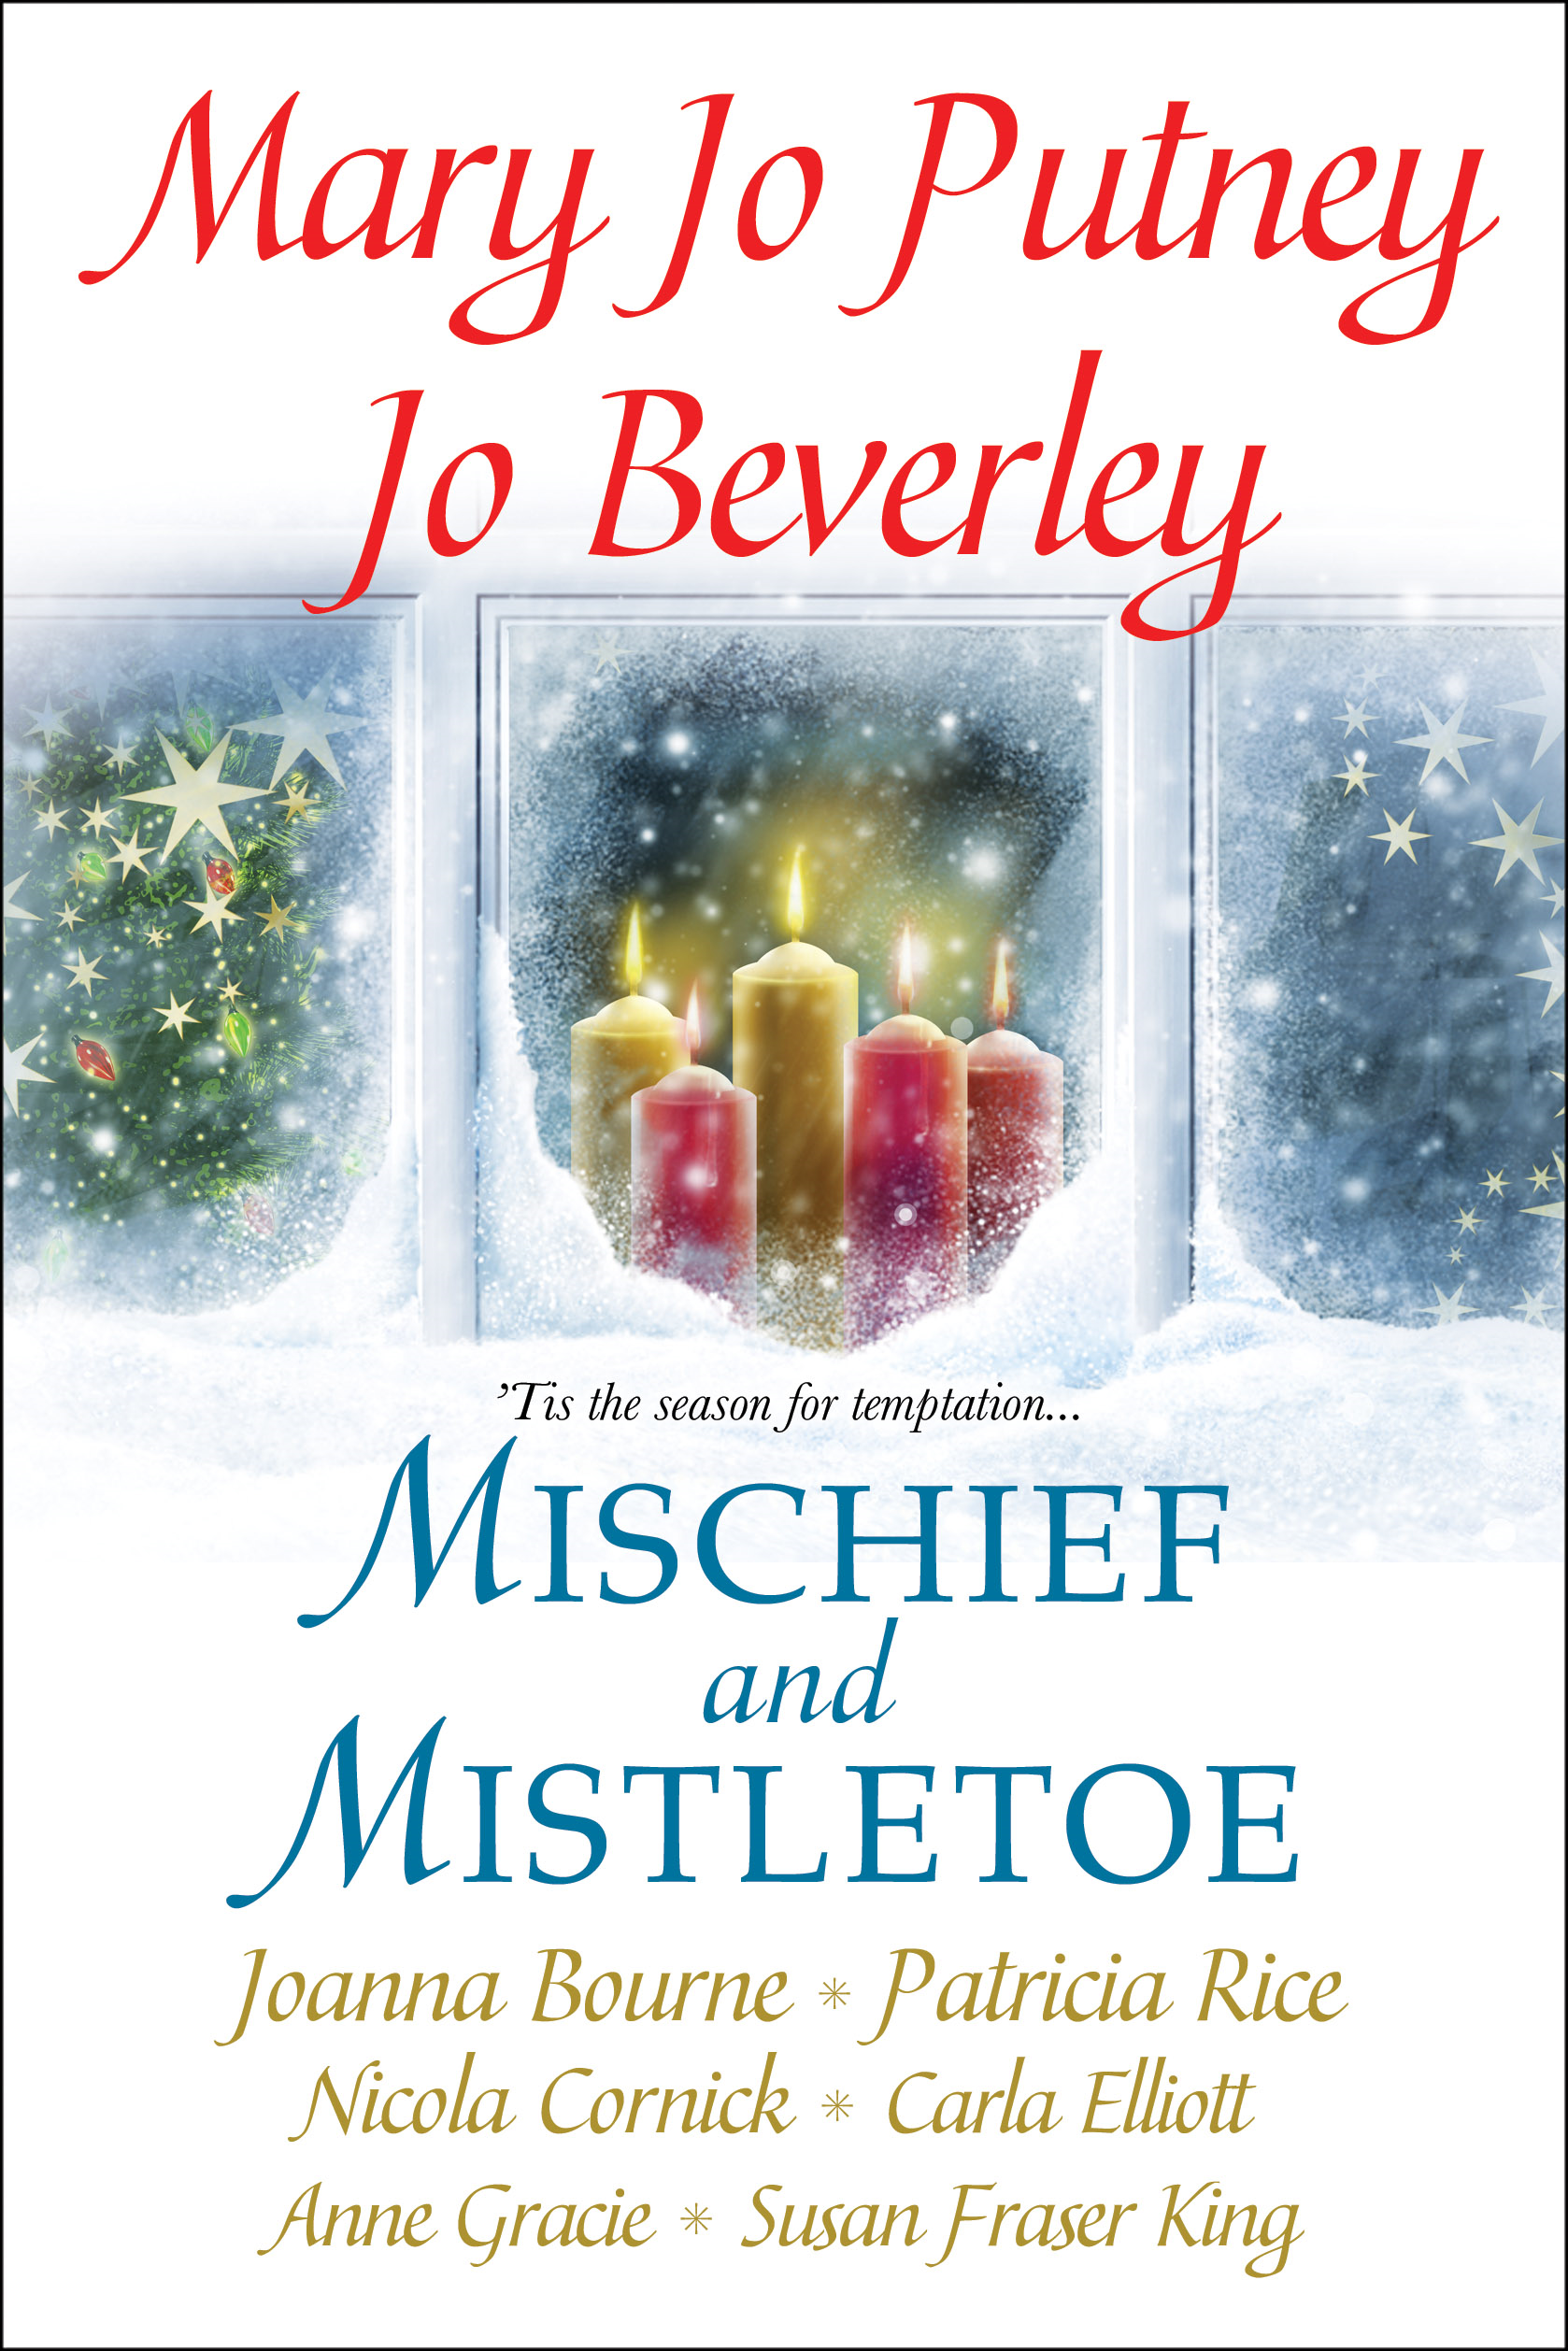 Mischief and Mistletoe By: Joanna Bourne,Mary Jo Putney,Patricia Rice, Jo Beverley, Nicola Cornick, Anne Gracie, Susan Fraser King, Cara Elliot